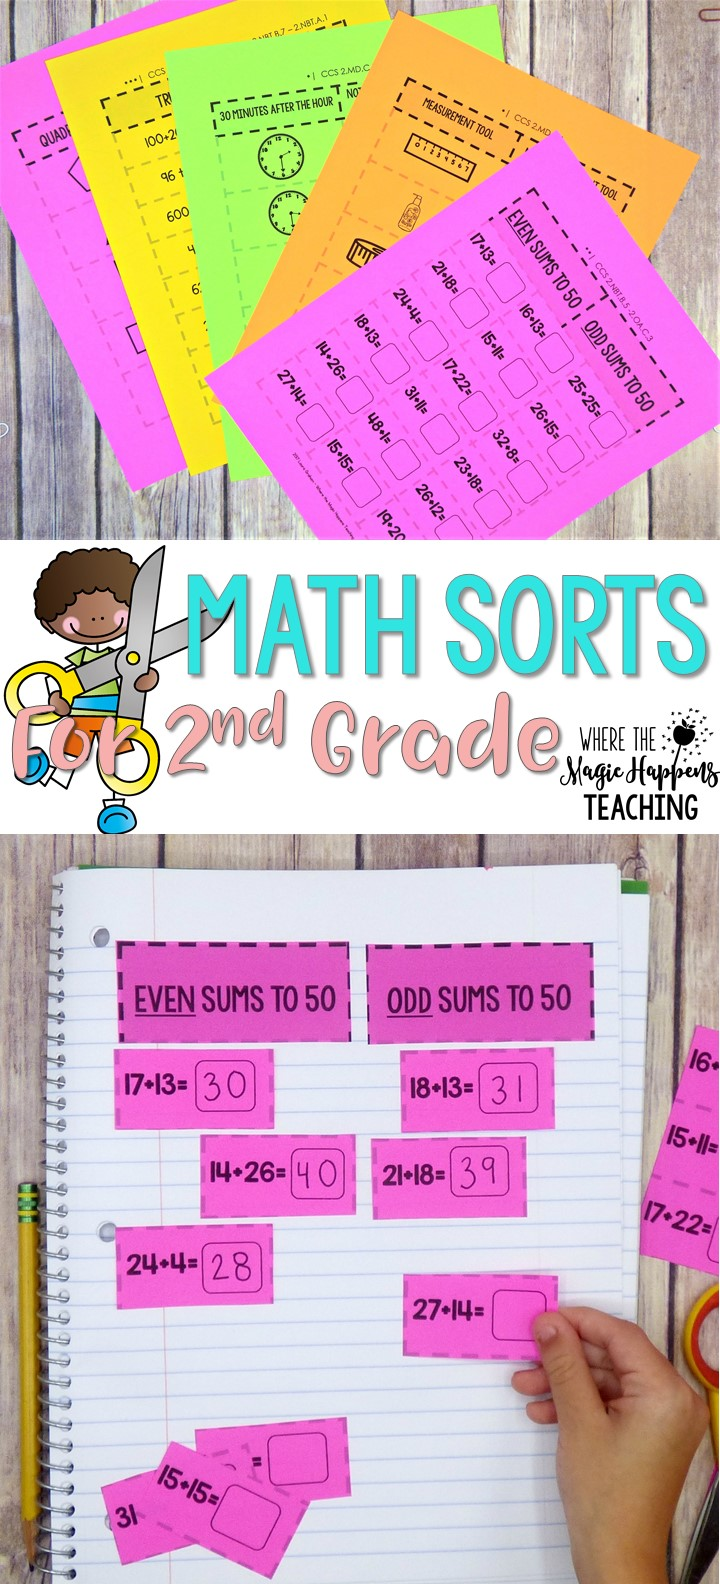 medium resolution of Math Sorts for 2nd Grade - Where the Magic Happens